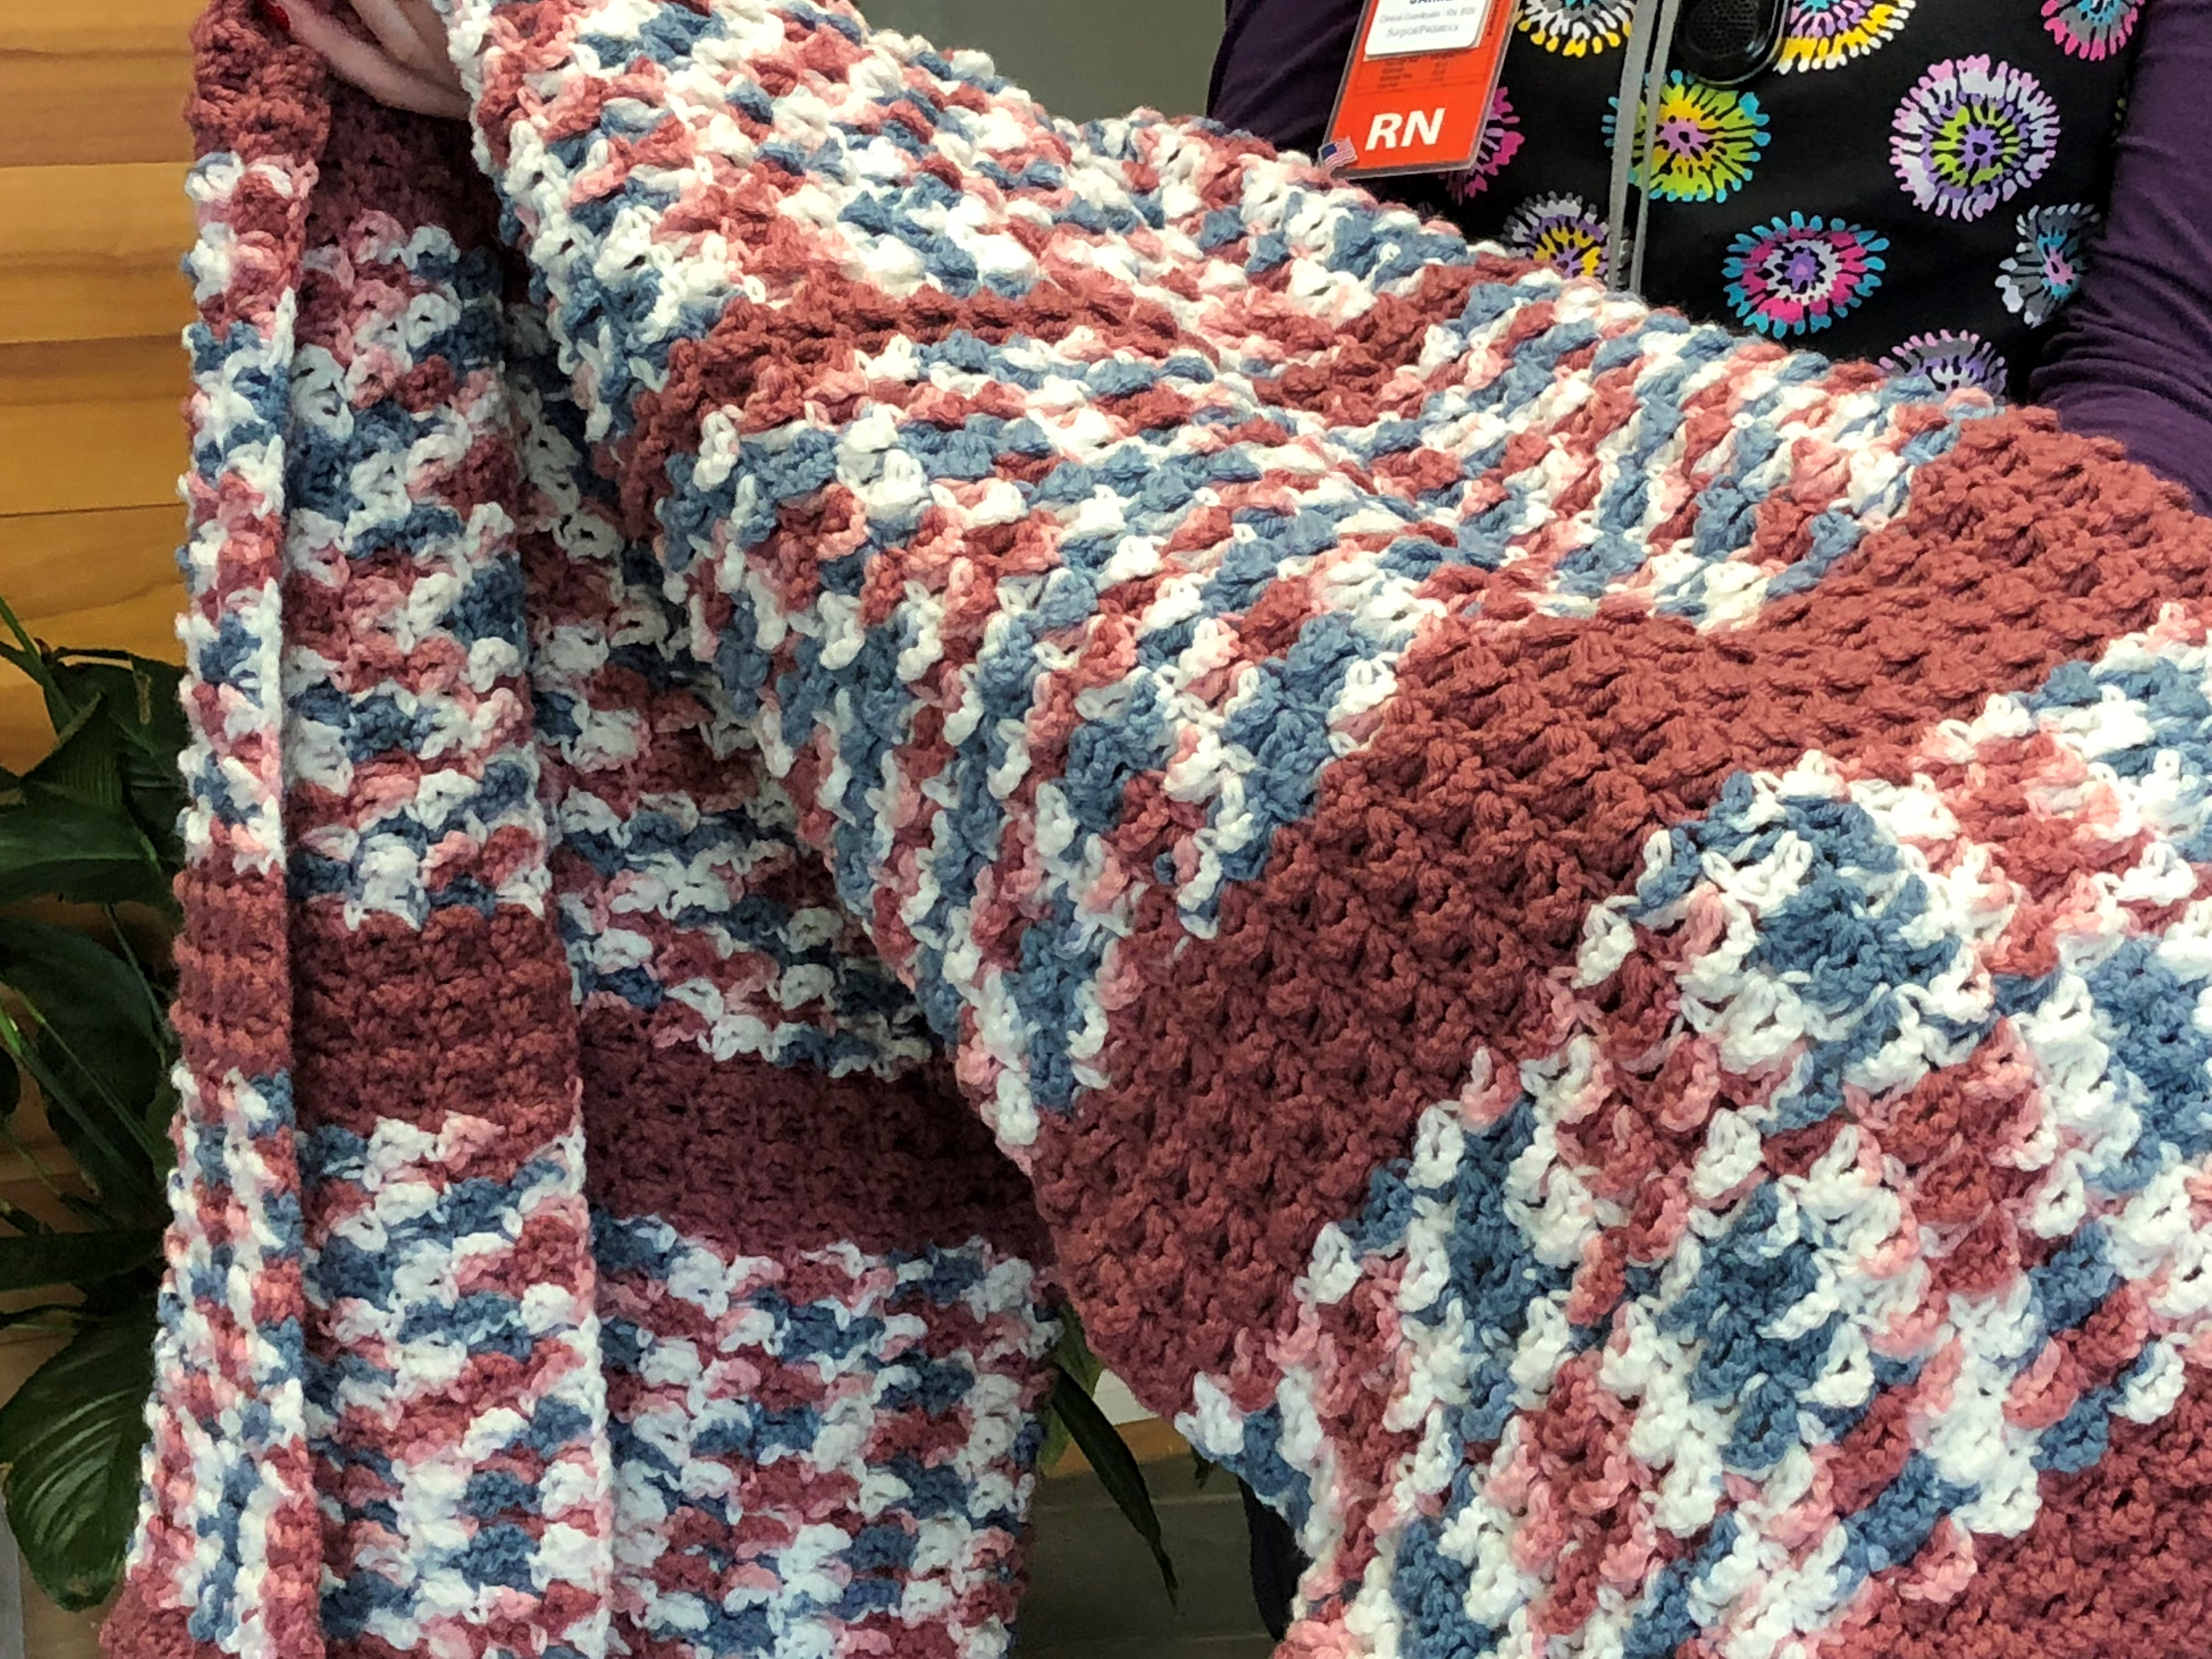 <p>People from around the world send individual squares to a Sutherlin woman who knits or crochets them into blankets for sick children. (SBG)</p>